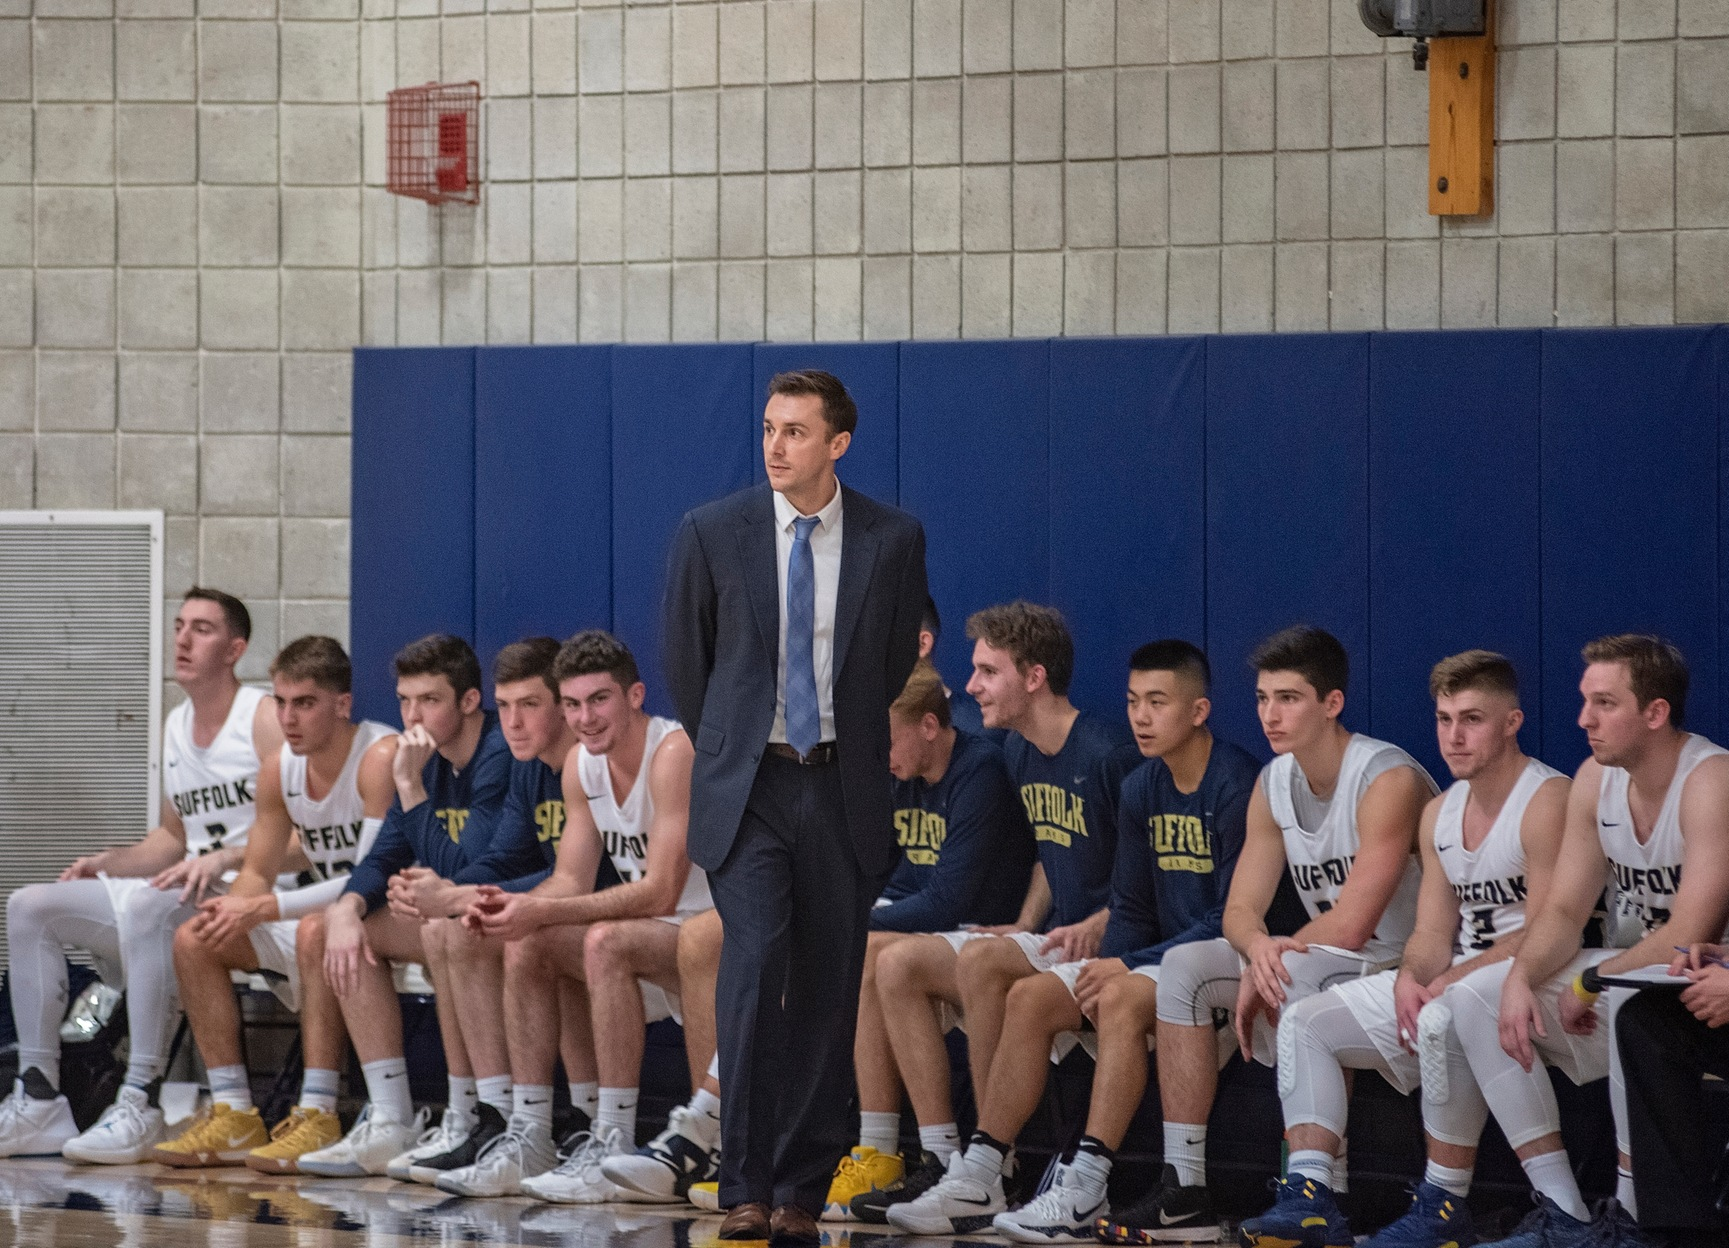 Image of a basketball coach with his players sitting on a bench.